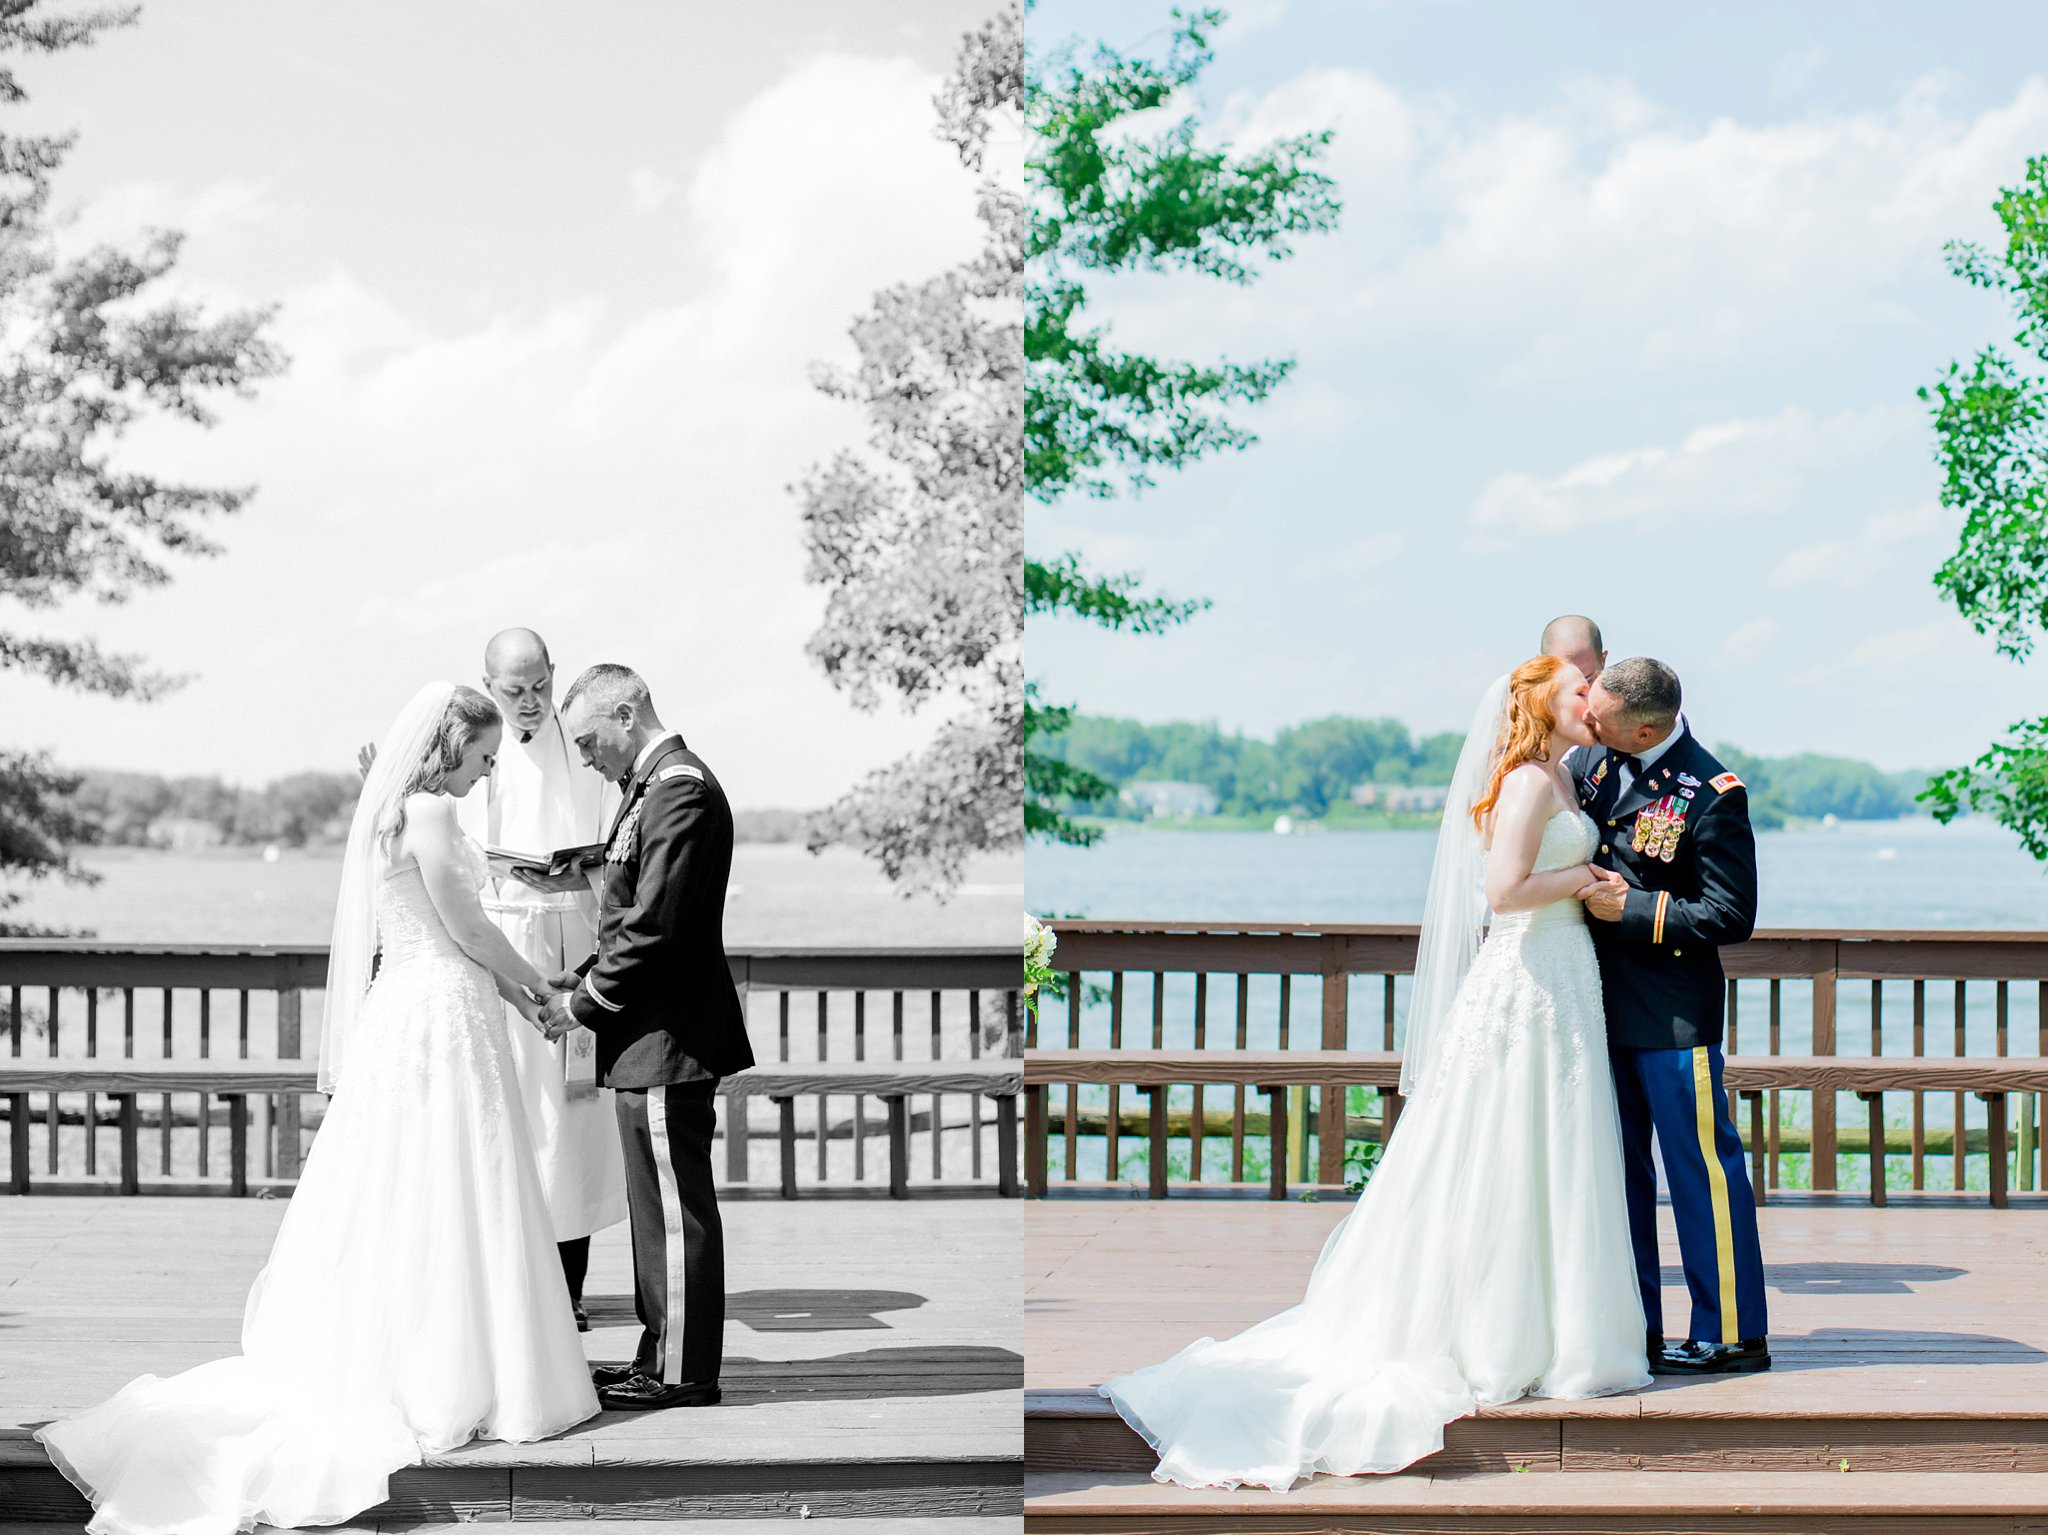 London Town and Gardens Wedding Maryland Wedding Photographer